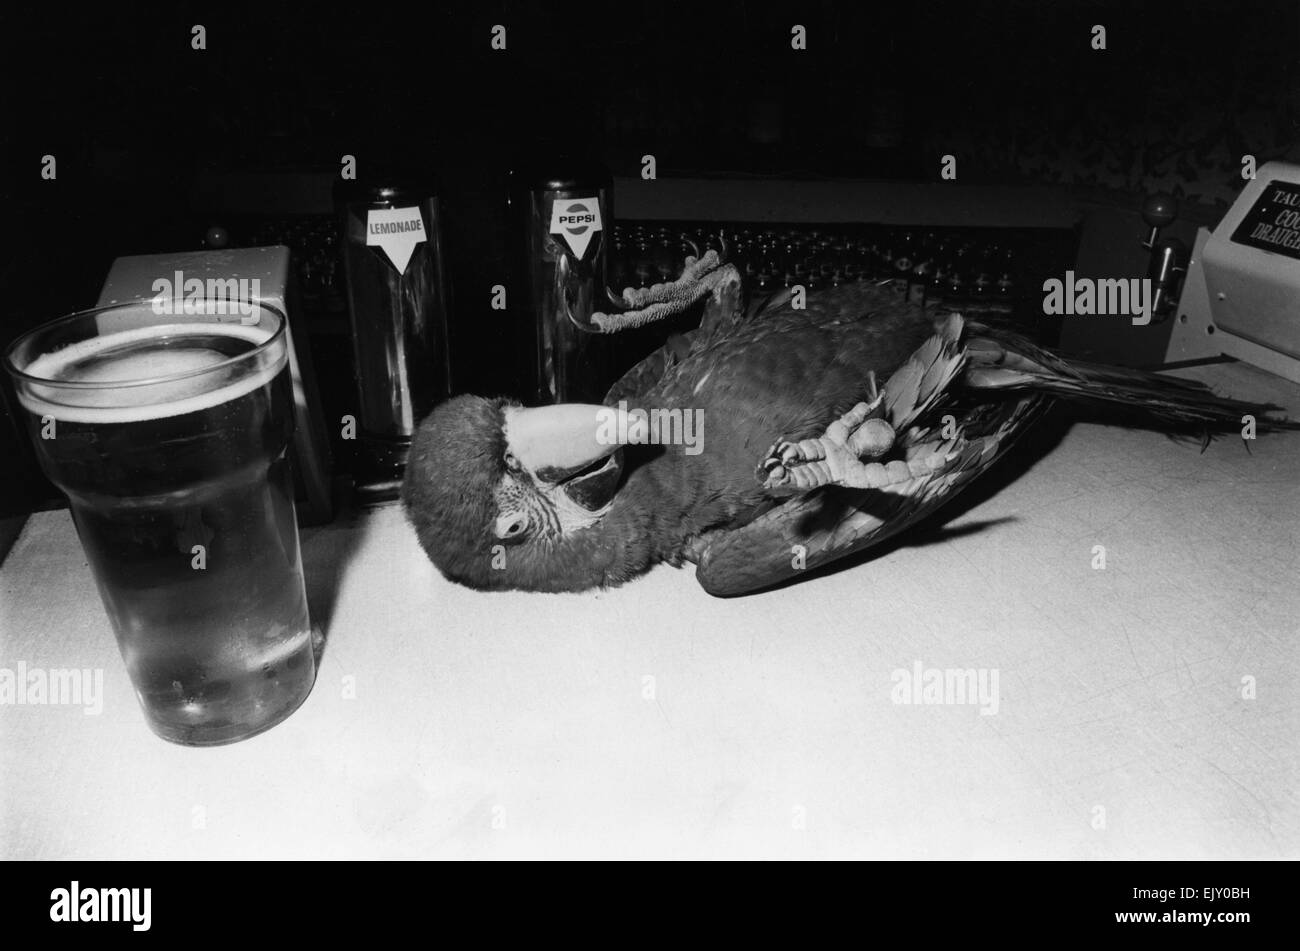 Pierre the drunken Macaw slips over on the bar after one to many beak-fulls of beer. 23rd July 1972. - Stock Image